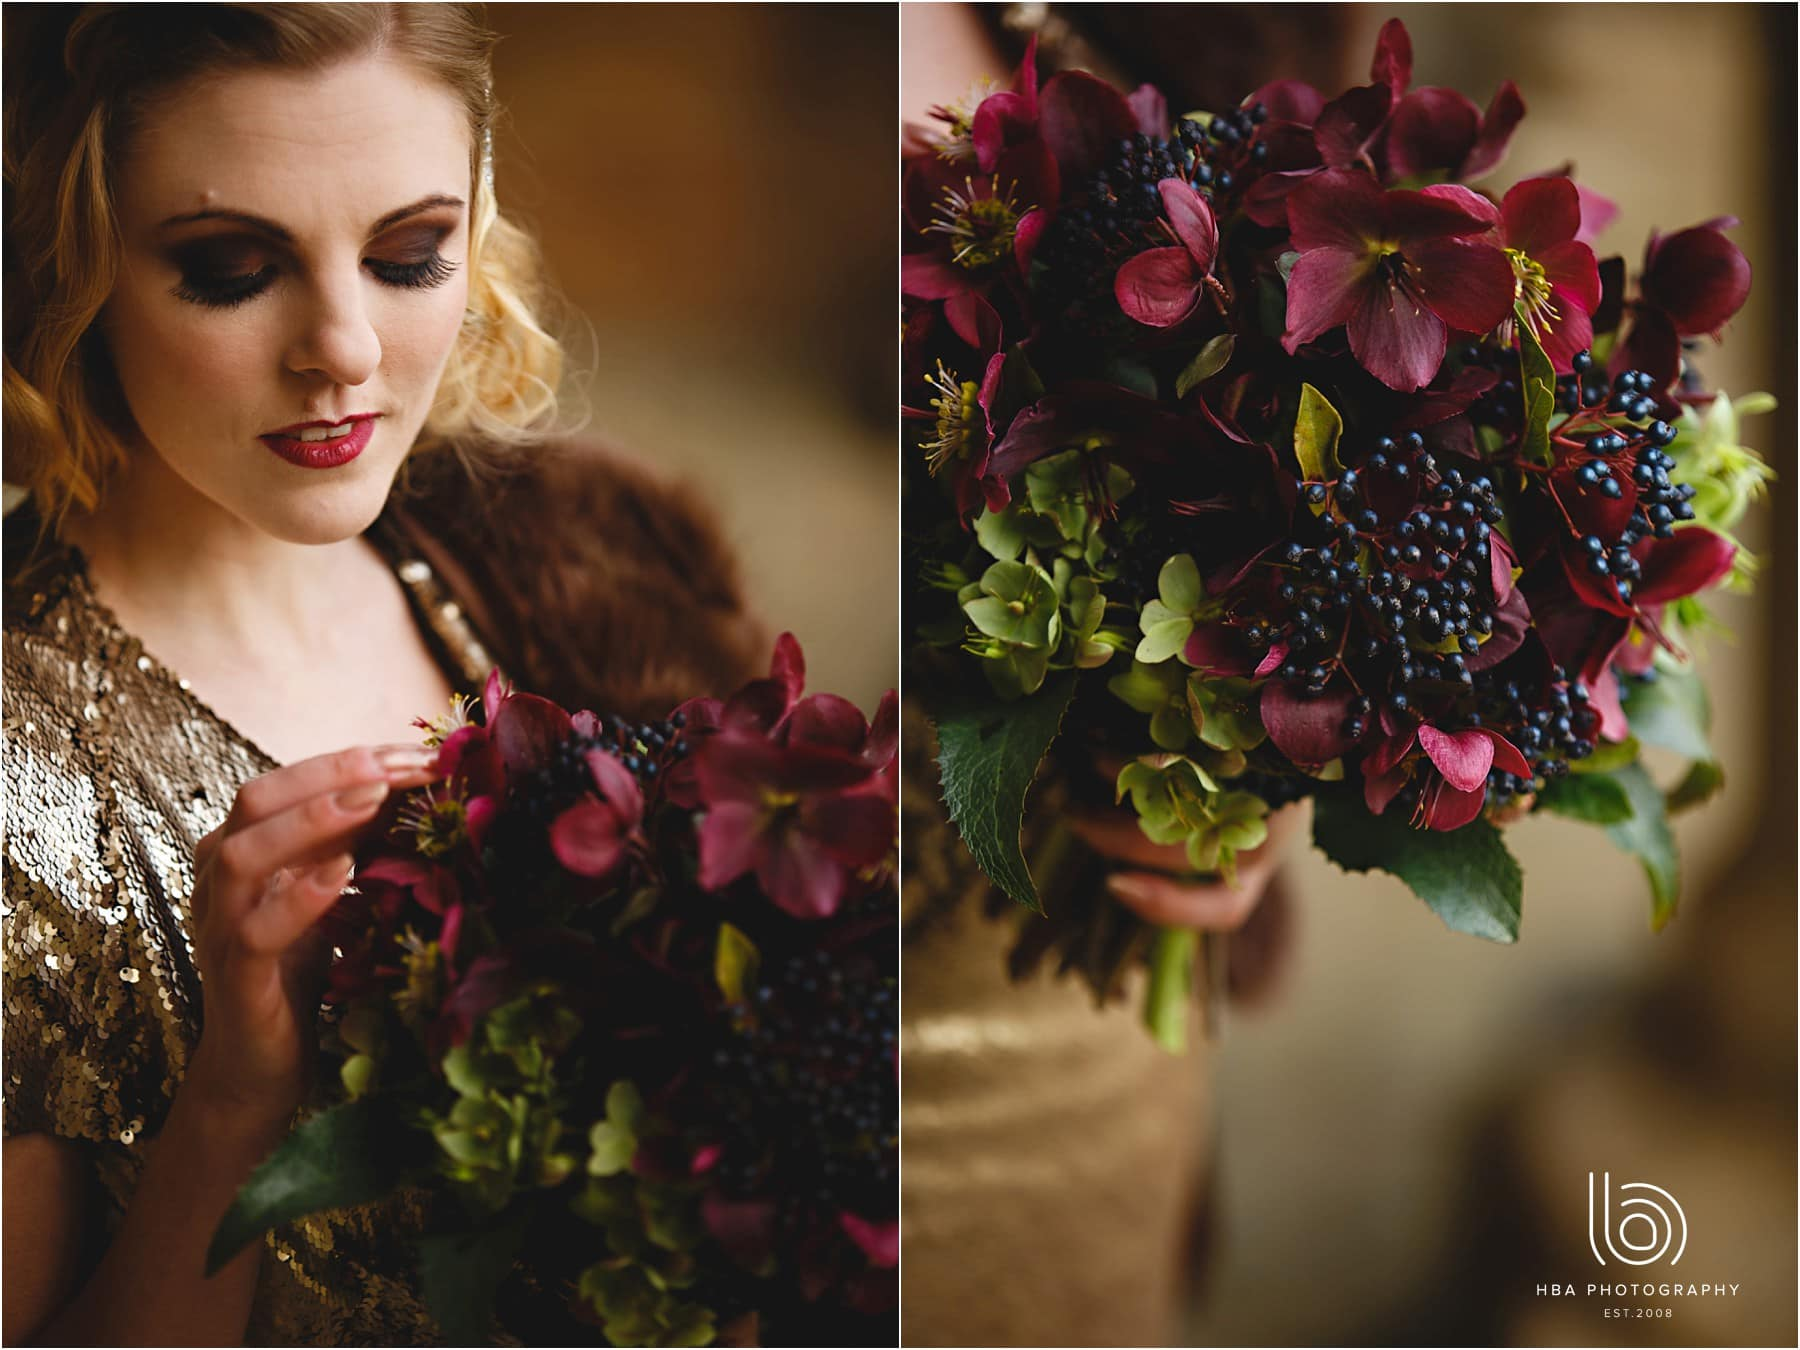 the bride holding her dark red flowers